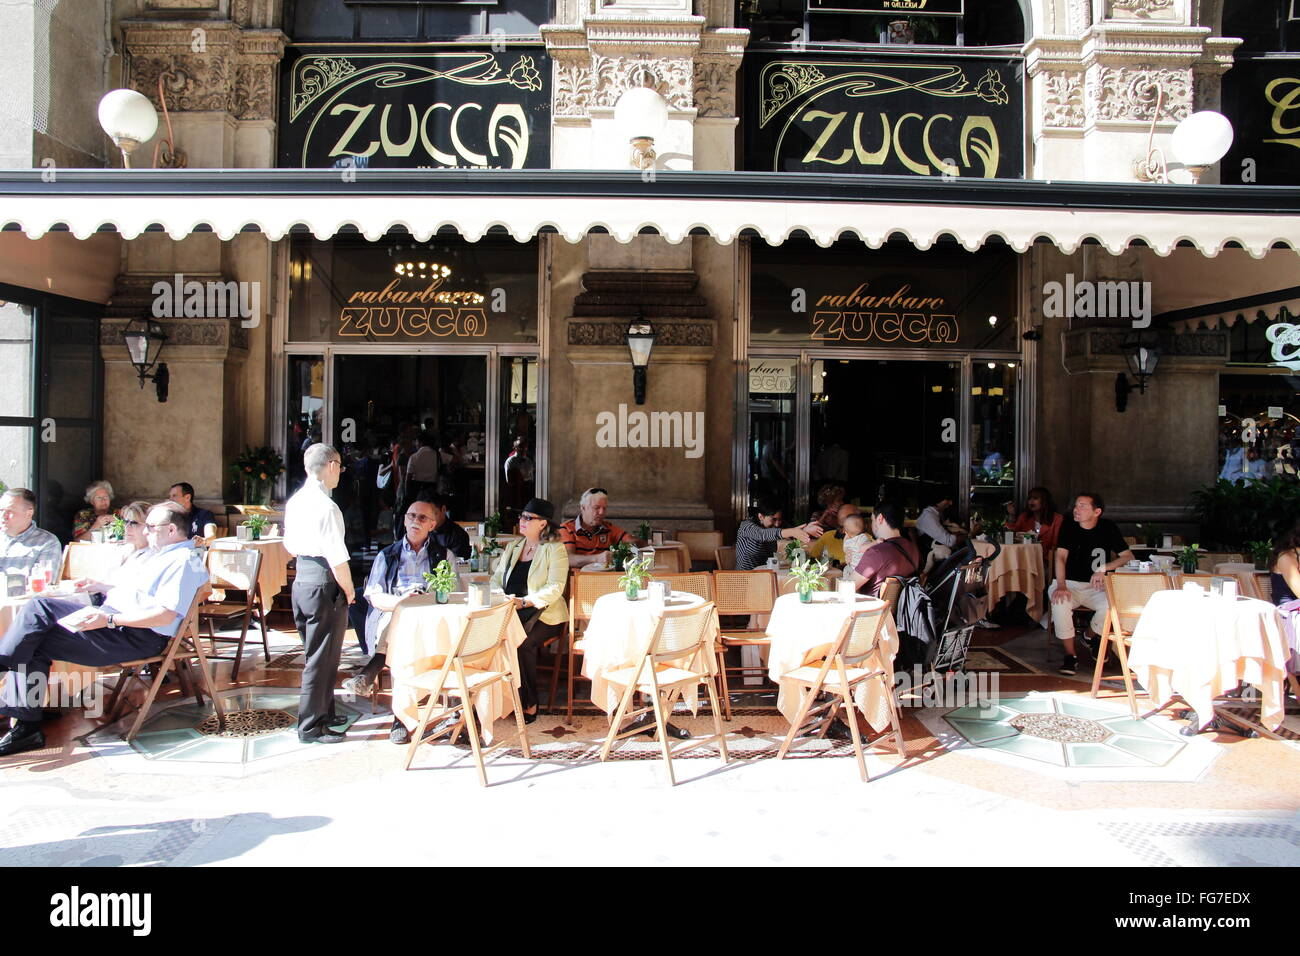 geography / travel, Italy, Lombardy, Milan, Galleria Vittorio Emanuele II, restaurant 'La Zucca', here was - Stock Image